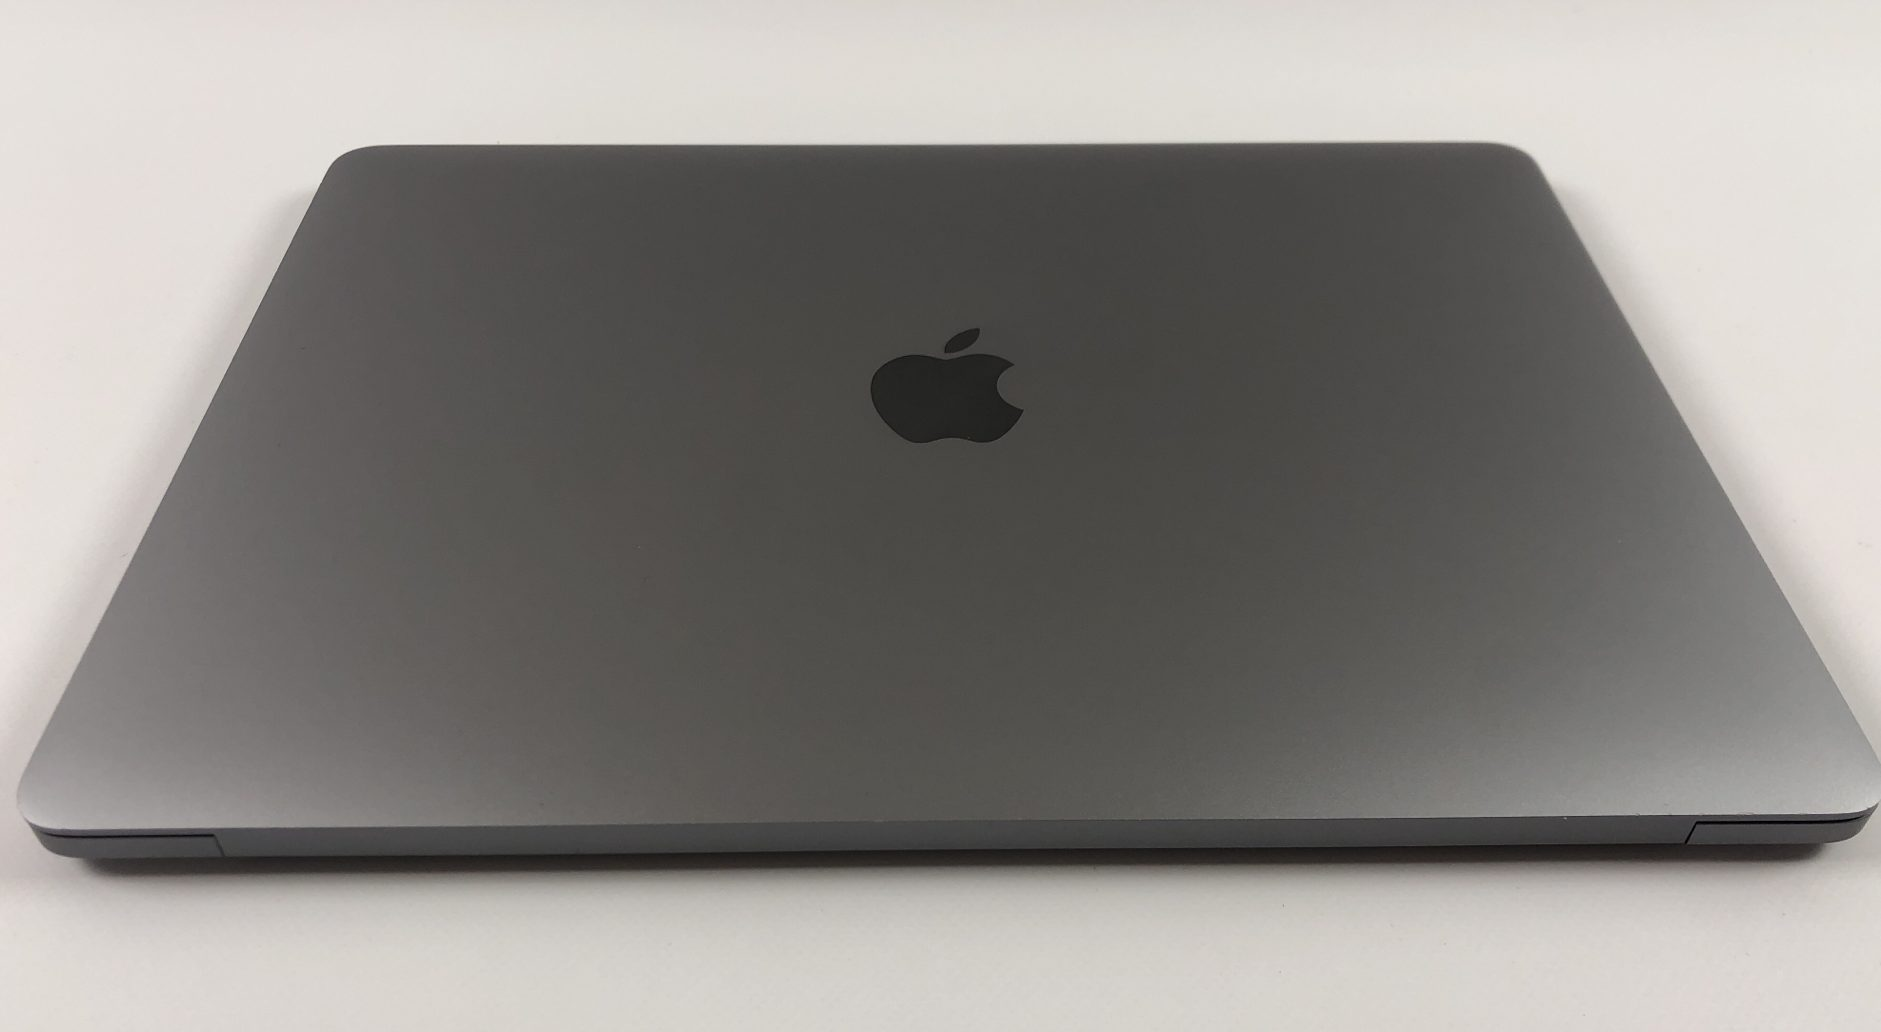 "MacBook Pro 13"" 4TBT Mid 2018 (Intel Quad-Core i5 2.3 GHz 8 GB RAM 256 GB SSD), Space Gray, Intel Quad-Core i5 2.3 GHz, 8 GB RAM, 256 GB SSD, Afbeelding 2"